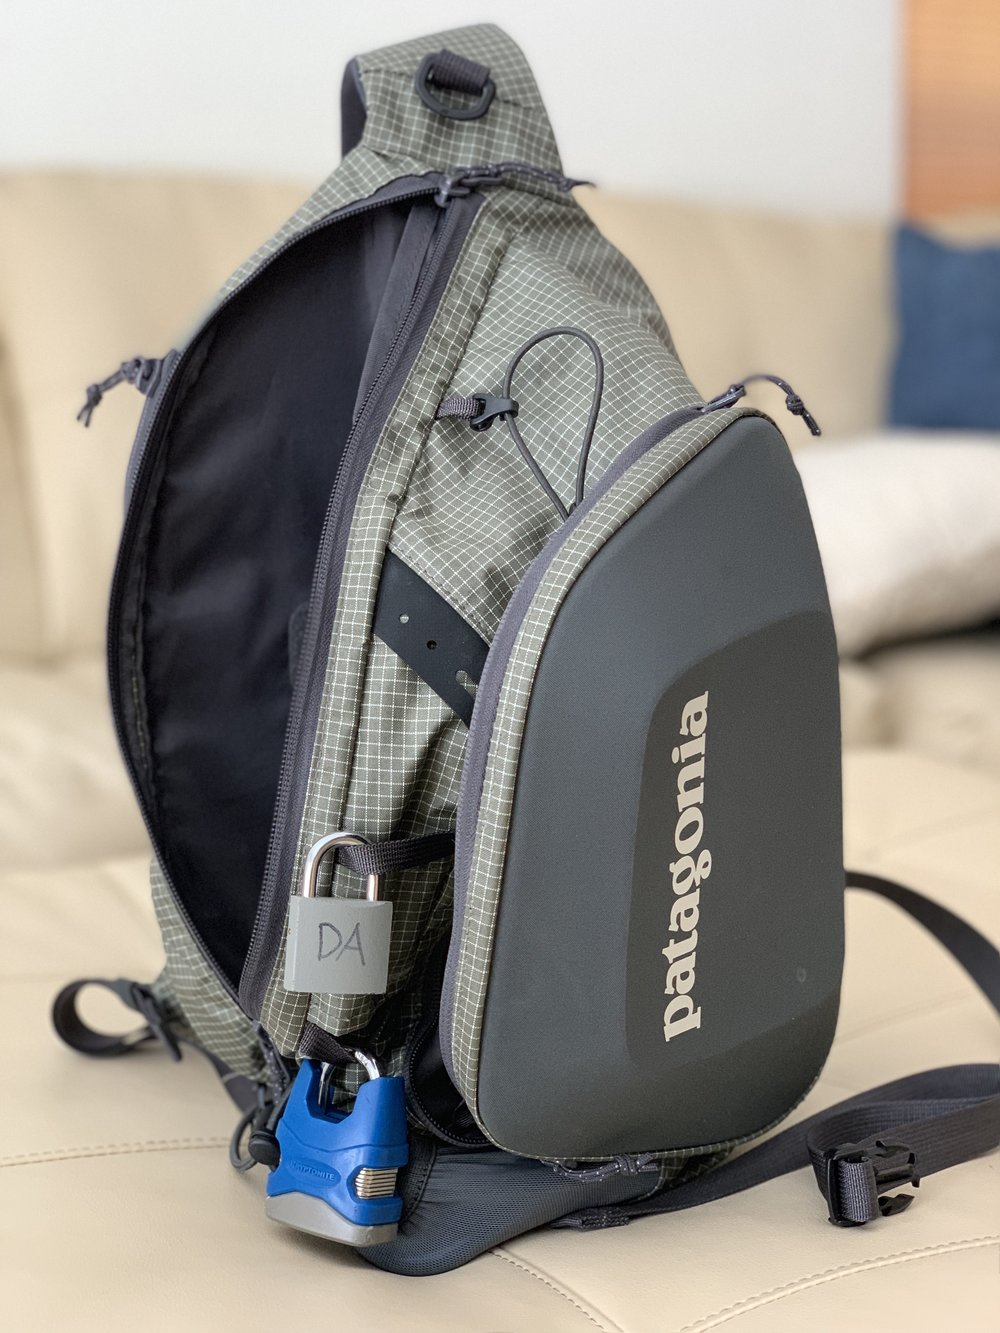 The Patagonia Stealth Atom Sling 15L